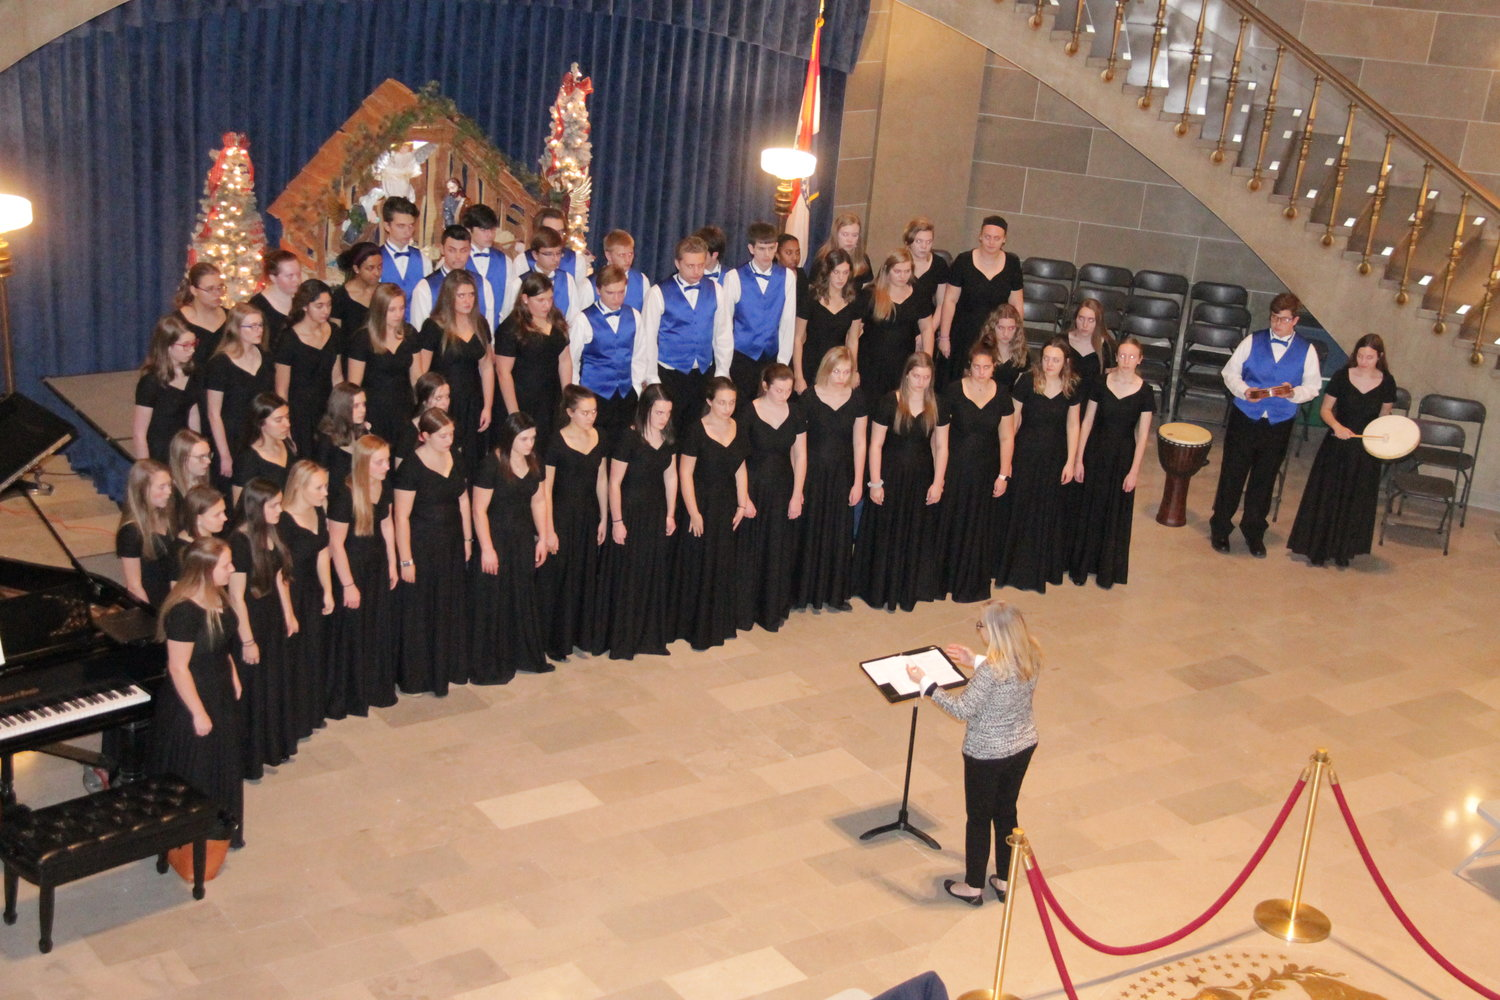 The Helias Catholic High School choir closesthe second hour of this year's Nativity at the Capitol event, held on Dec. 12 in the Capitol Rotunda.